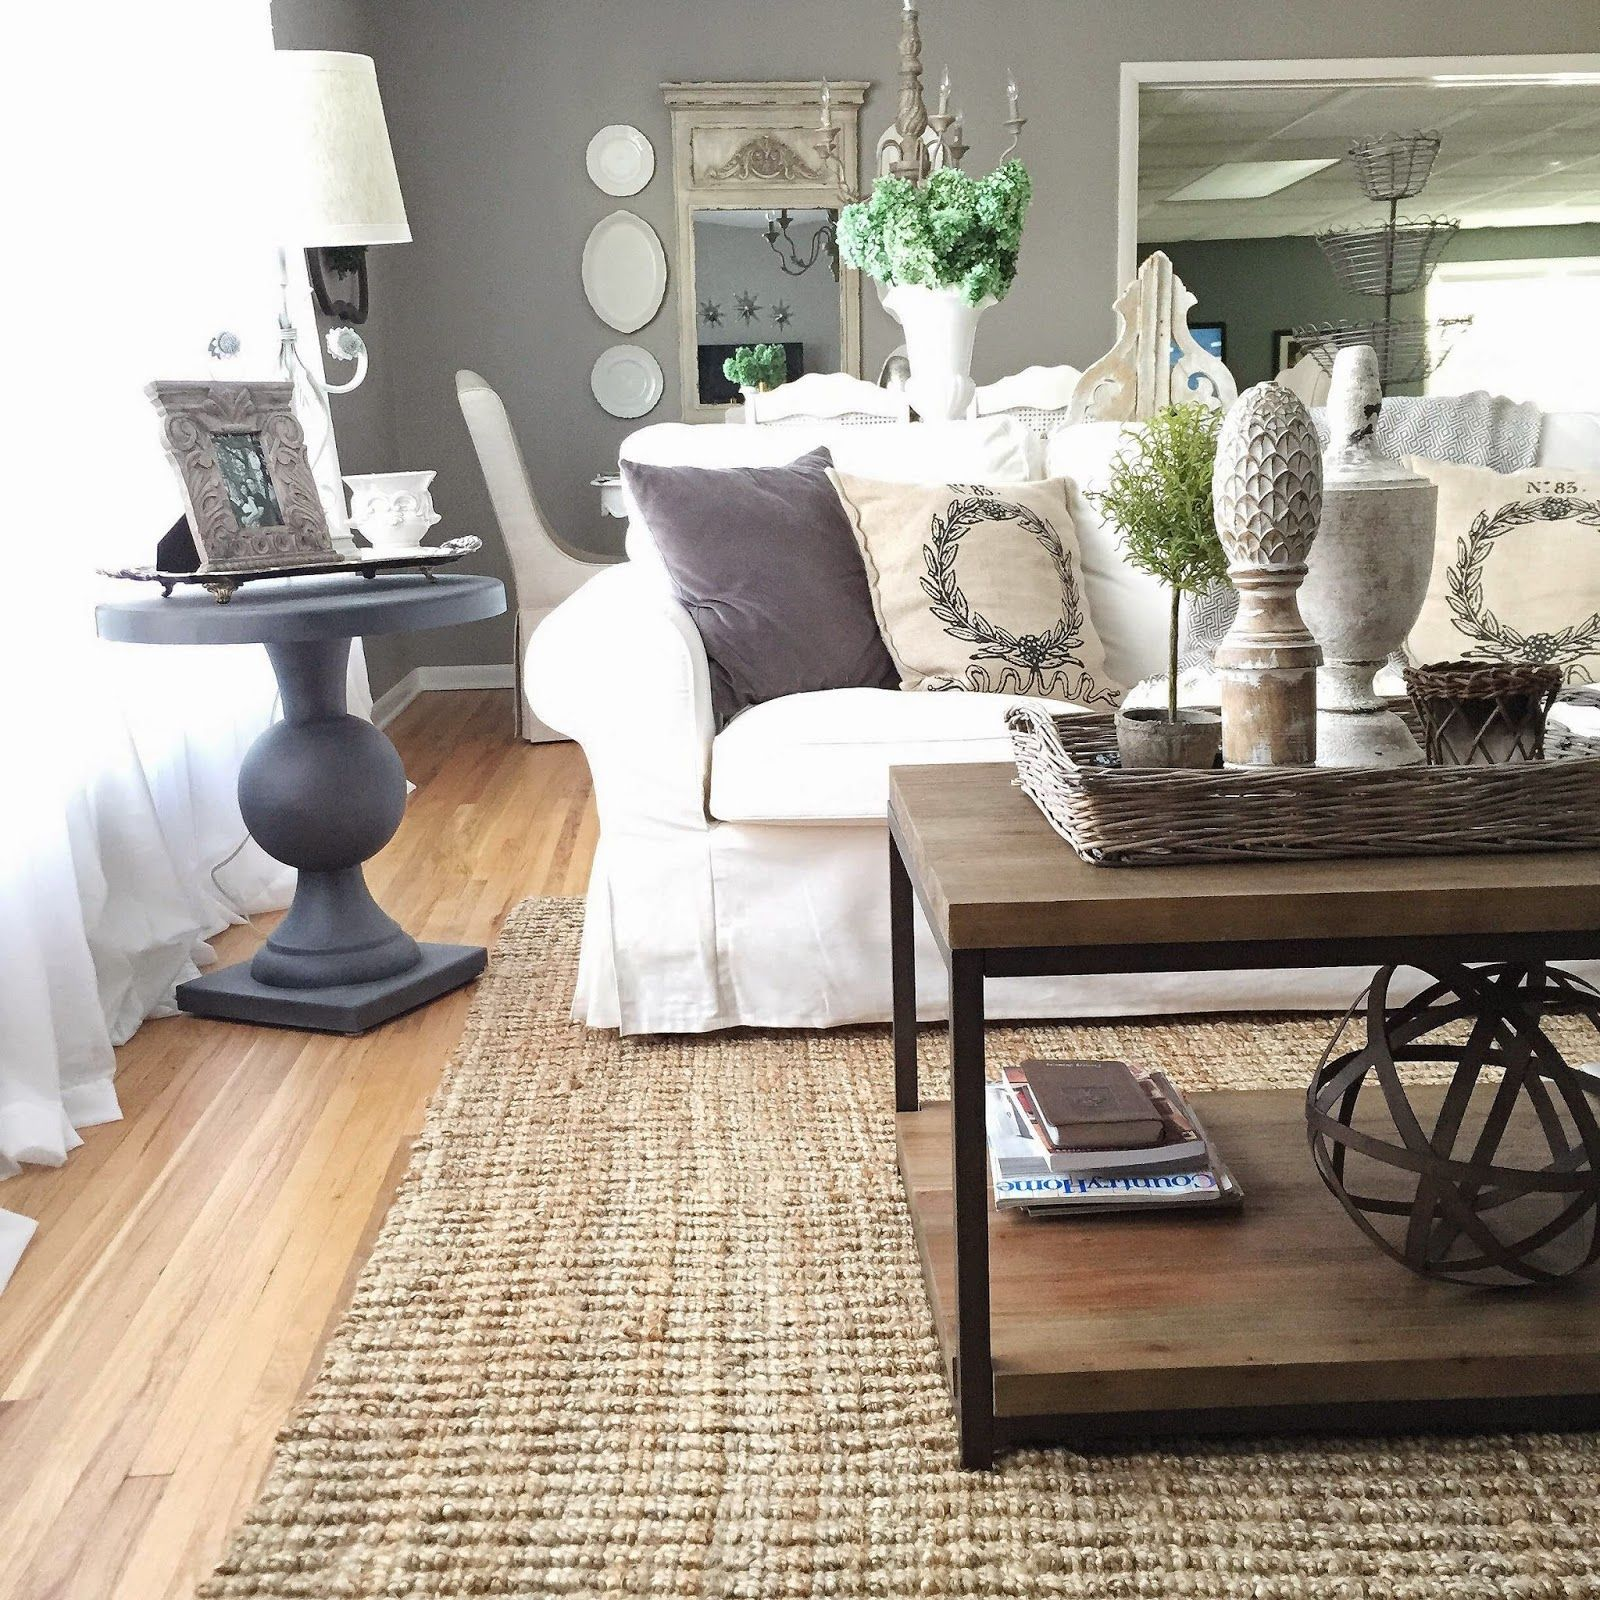 Eclectic Home Tour - 12th and White Blog | Budgeting, Cozy and ...